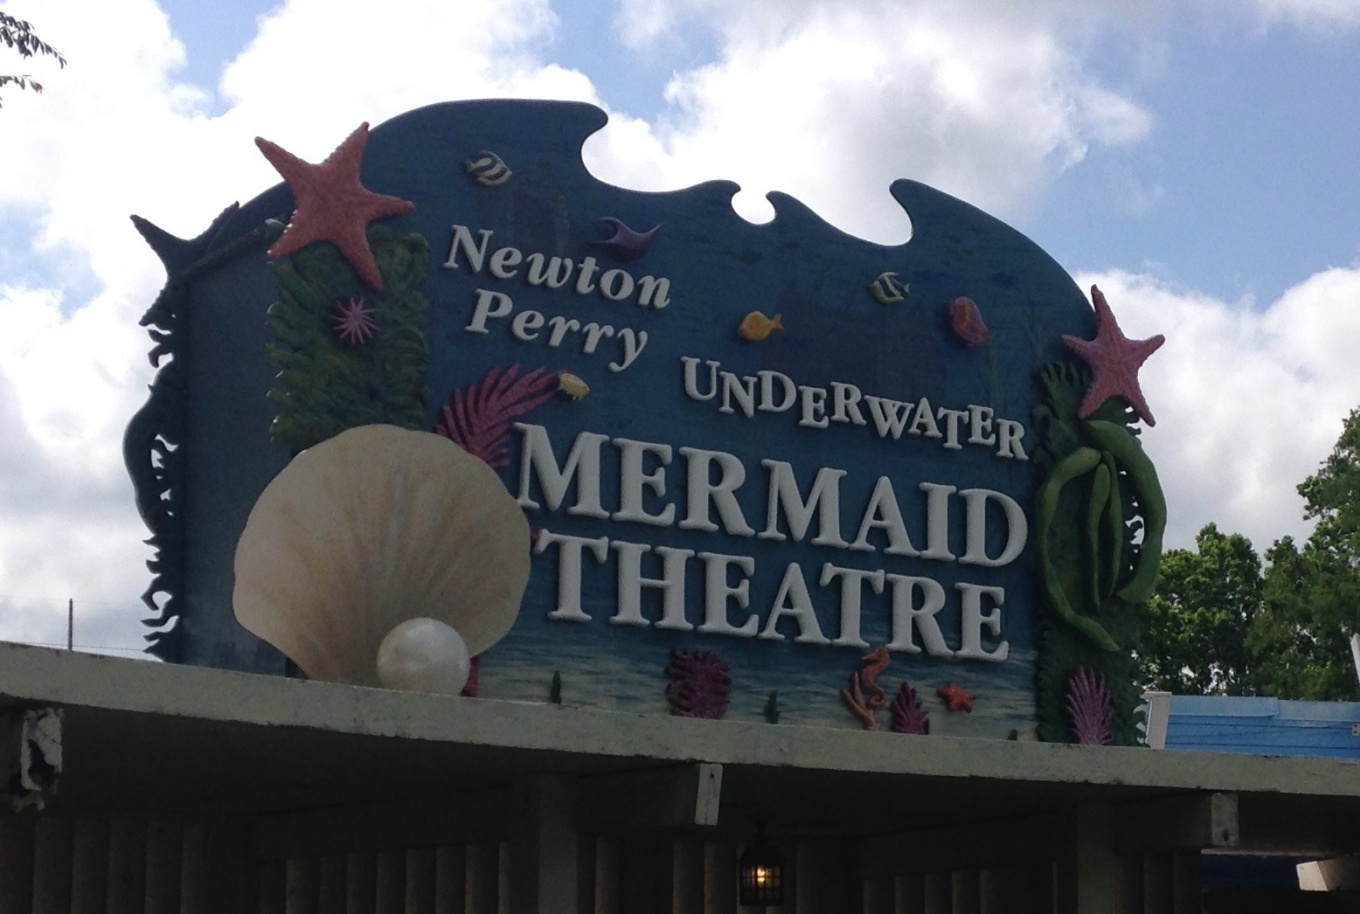 Mermaid Theatre